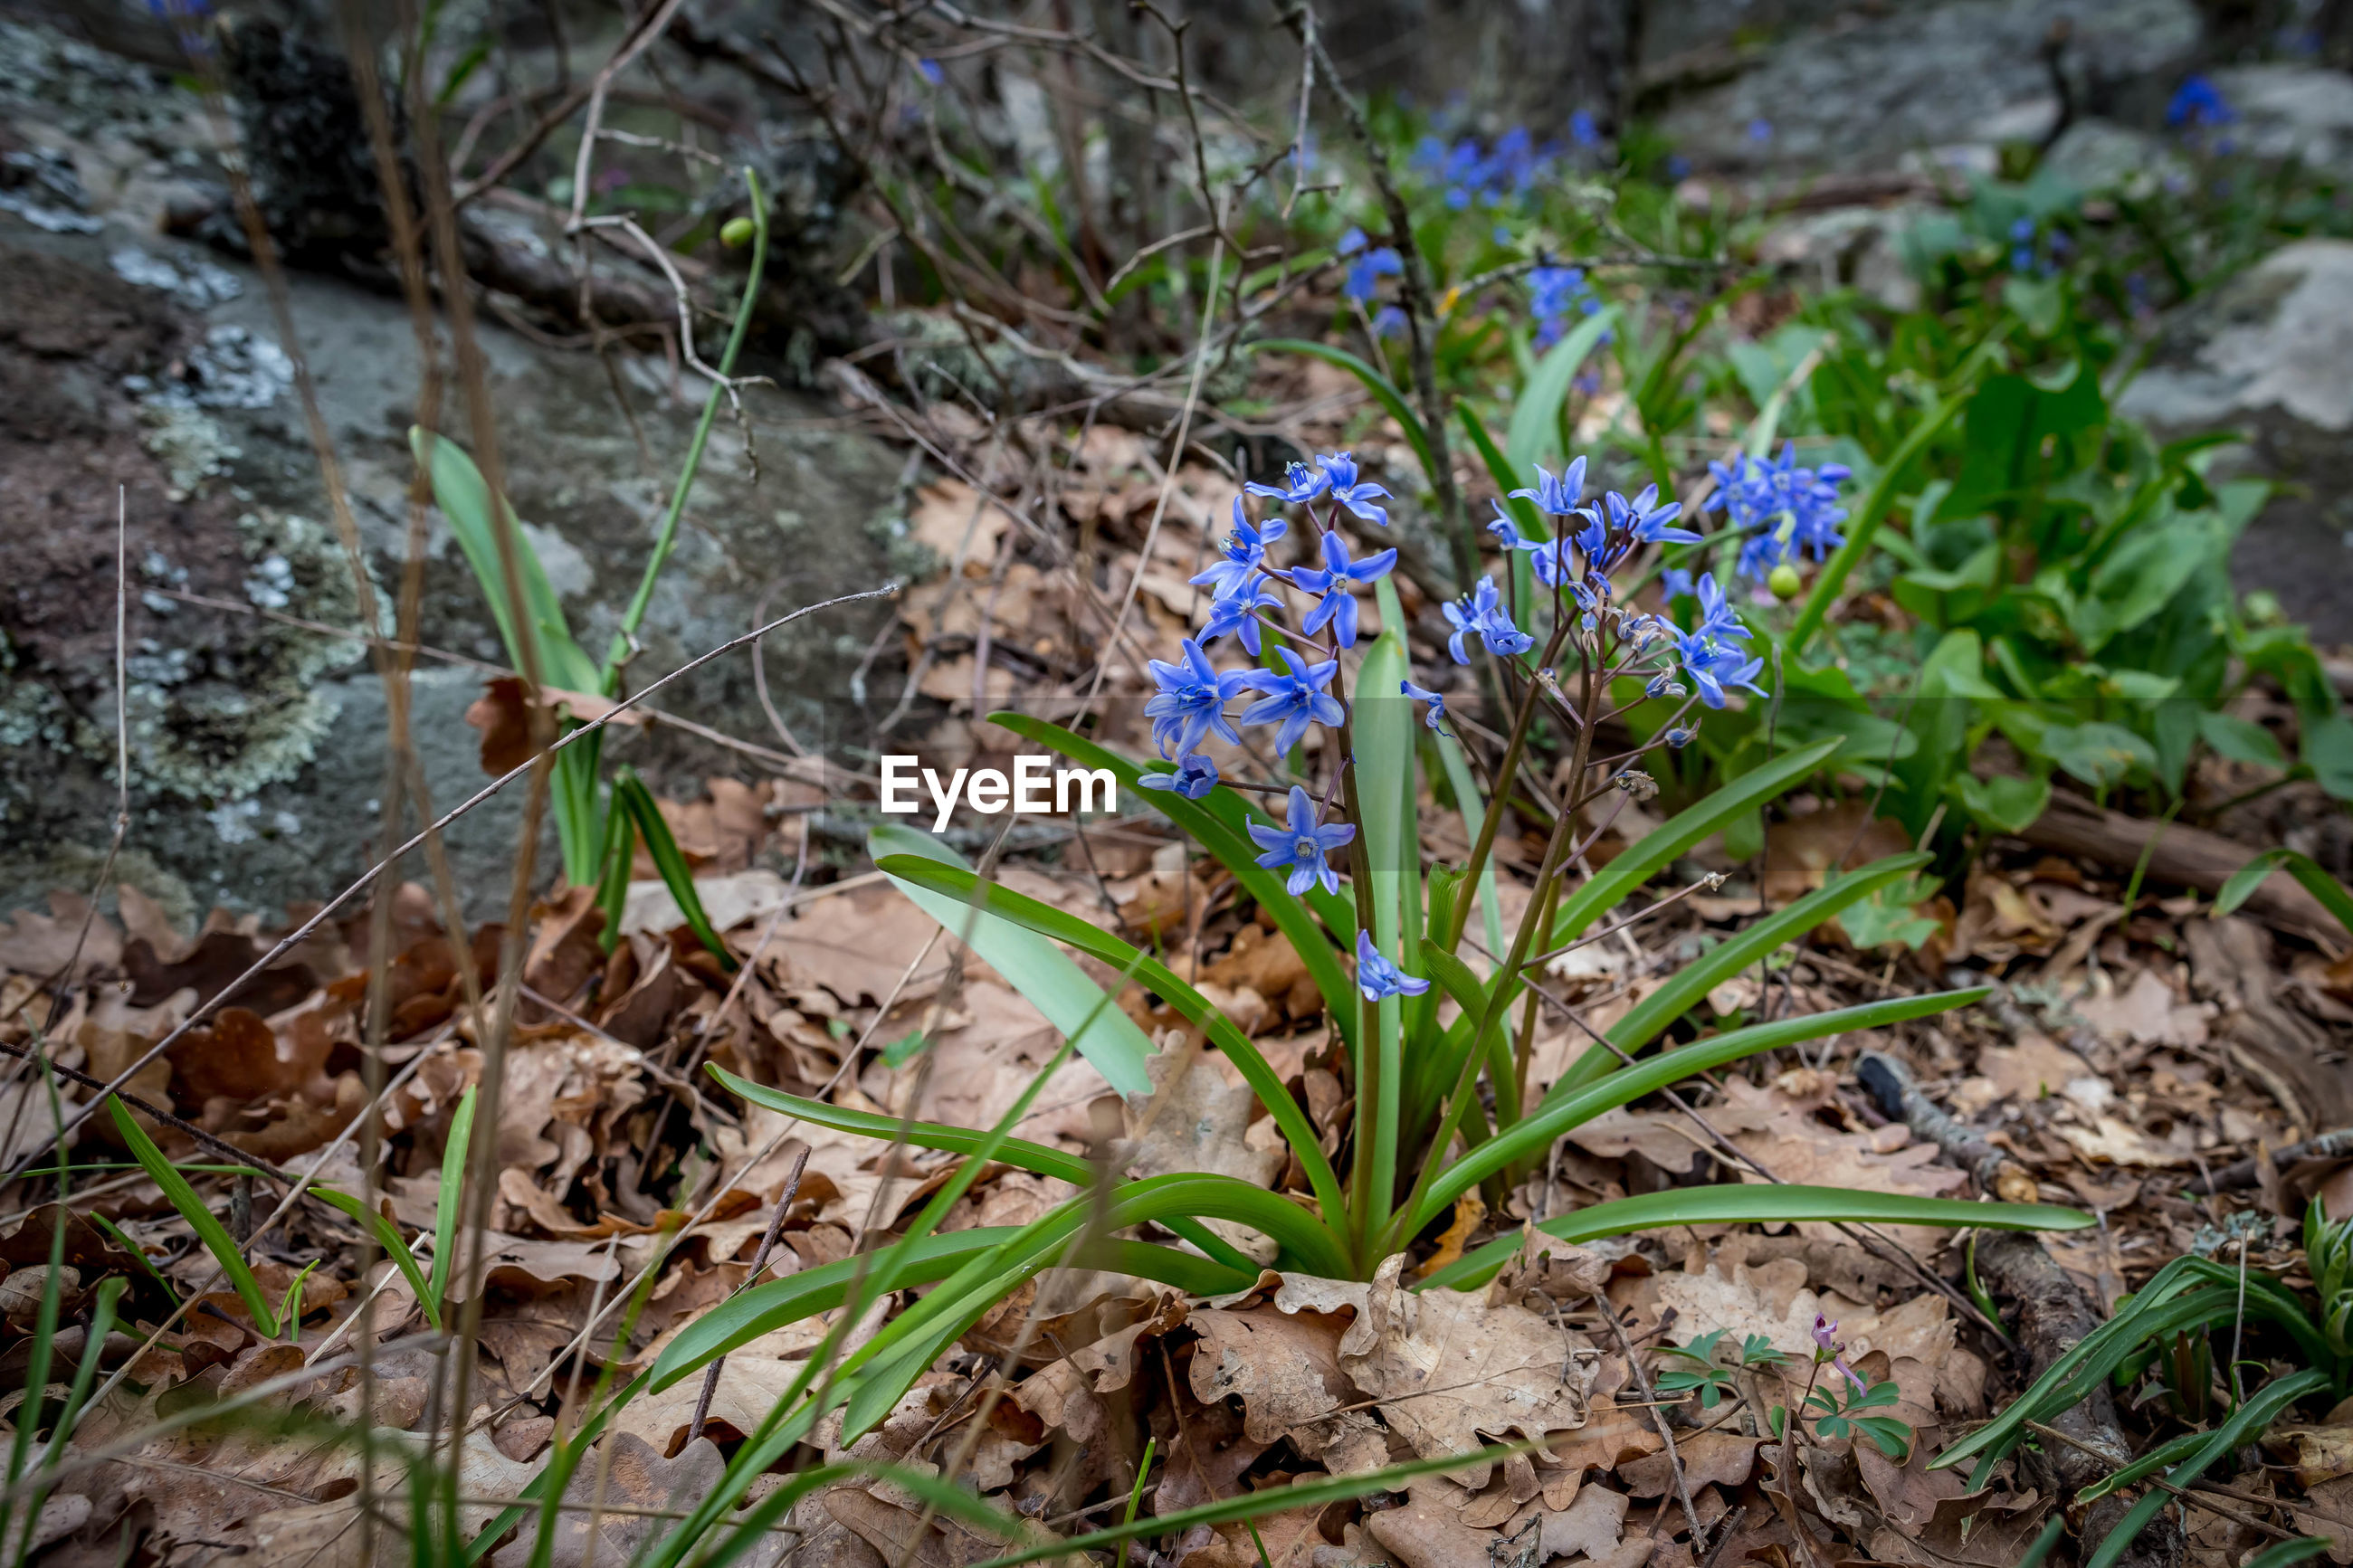 plant, growth, land, vulnerability, fragility, plant part, flower, field, leaf, flowering plant, beauty in nature, freshness, nature, close-up, day, selective focus, no people, high angle view, focus on foreground, green color, purple, outdoors, flower head, crocus